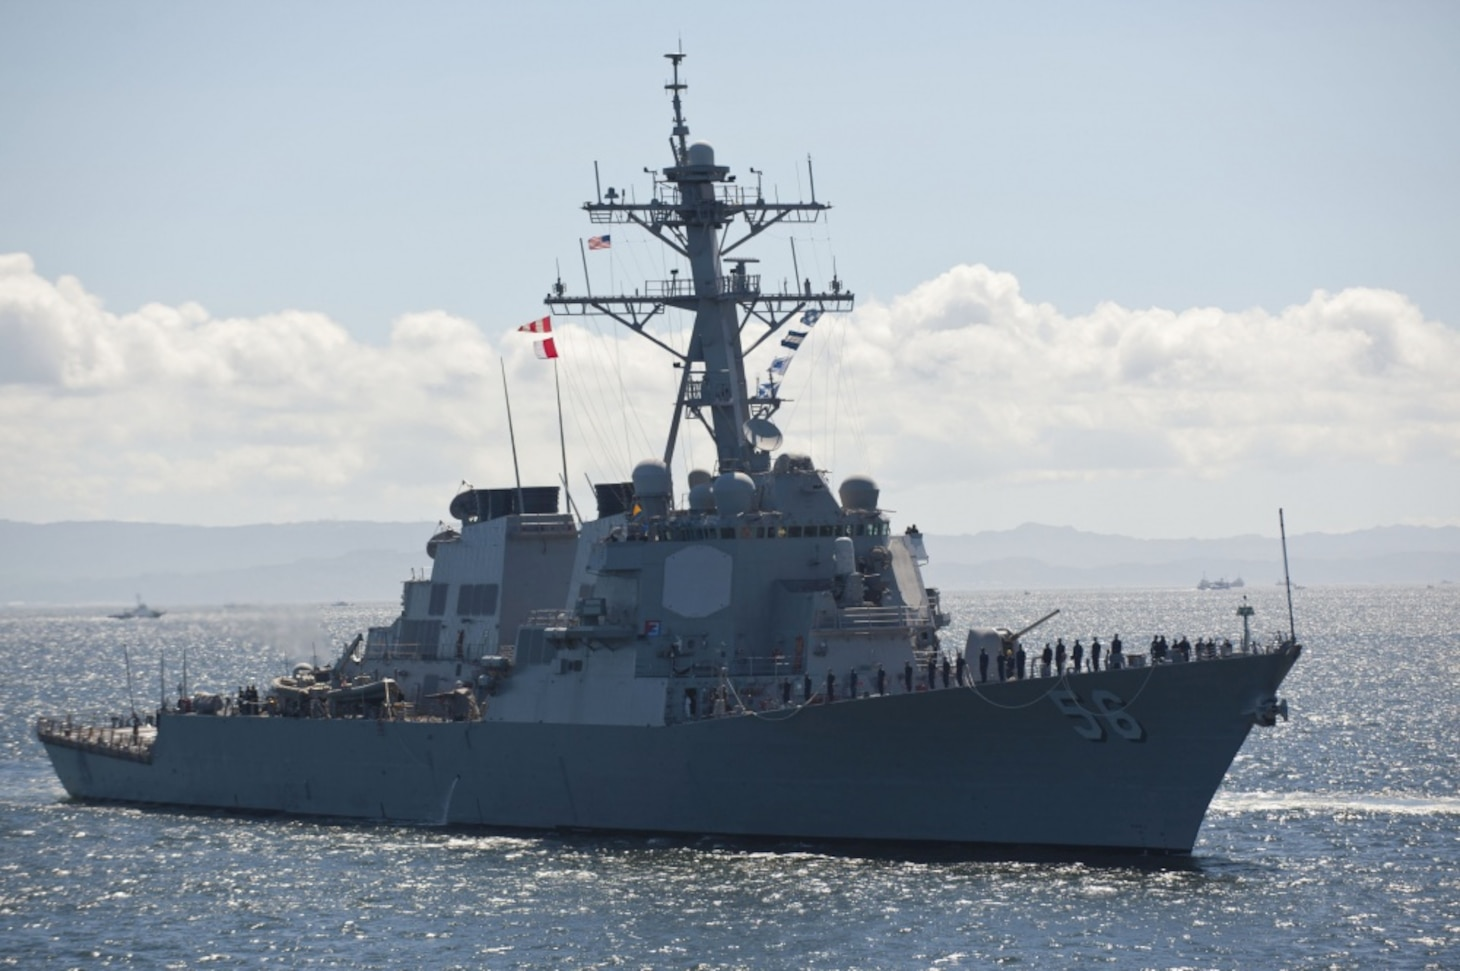 Official U.S. Navy file photo of Arleigh Burke-class guided-missile destroyer USS John S. McCain (DDG 56).